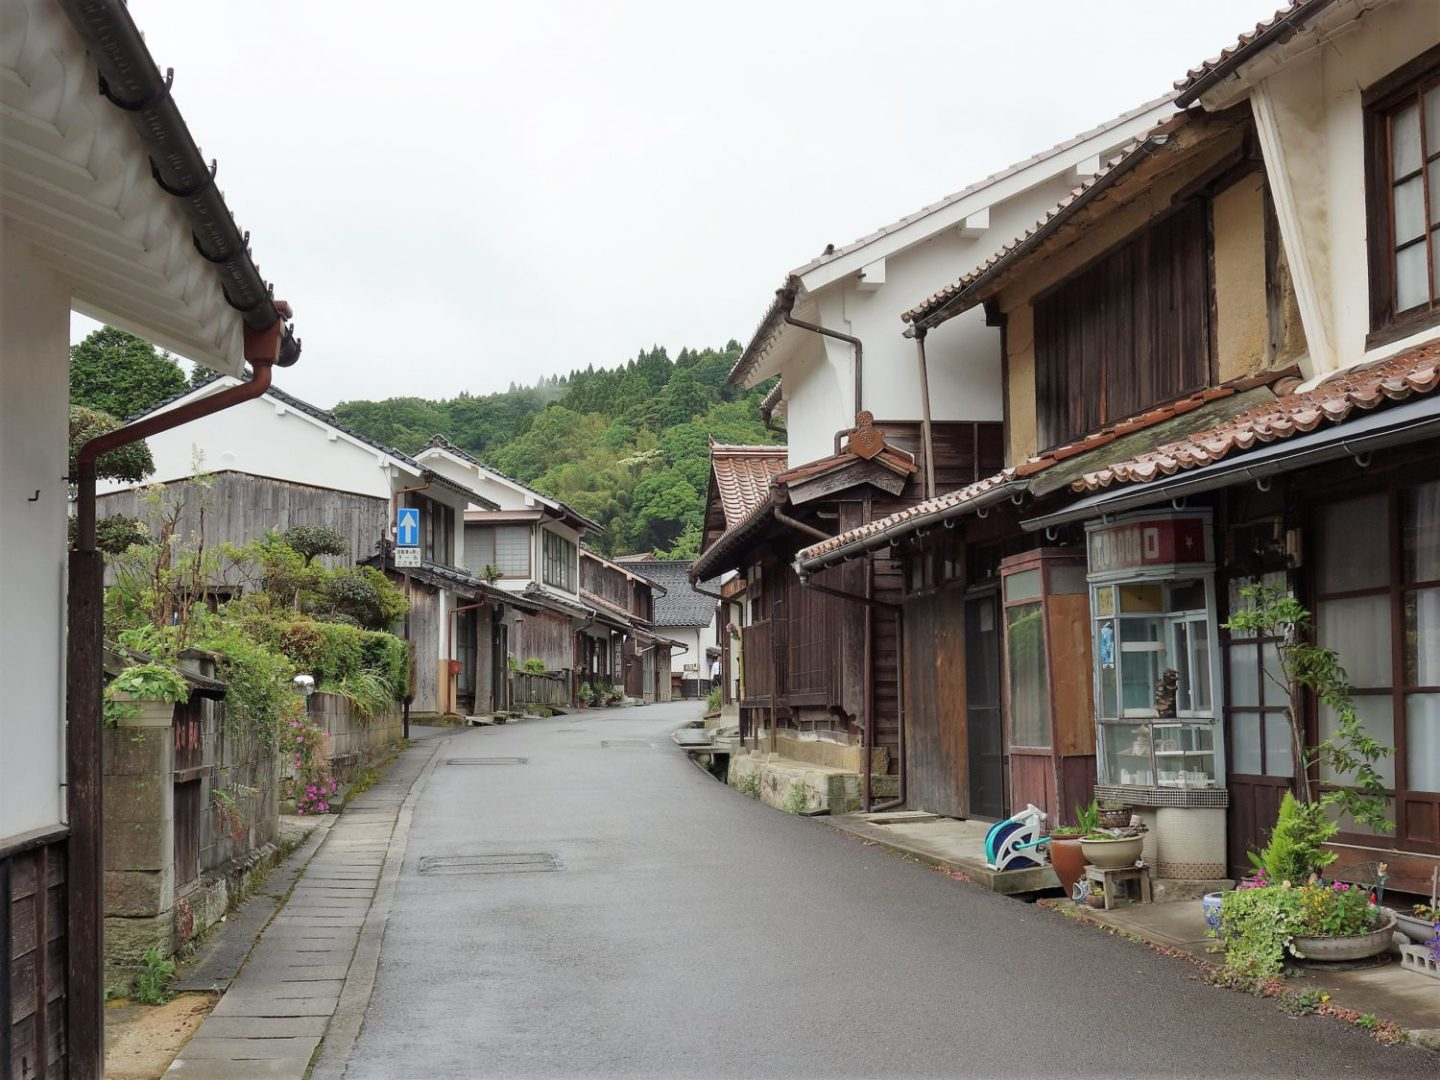 Townscape of Omori district, Oda, Shimane Prefecture